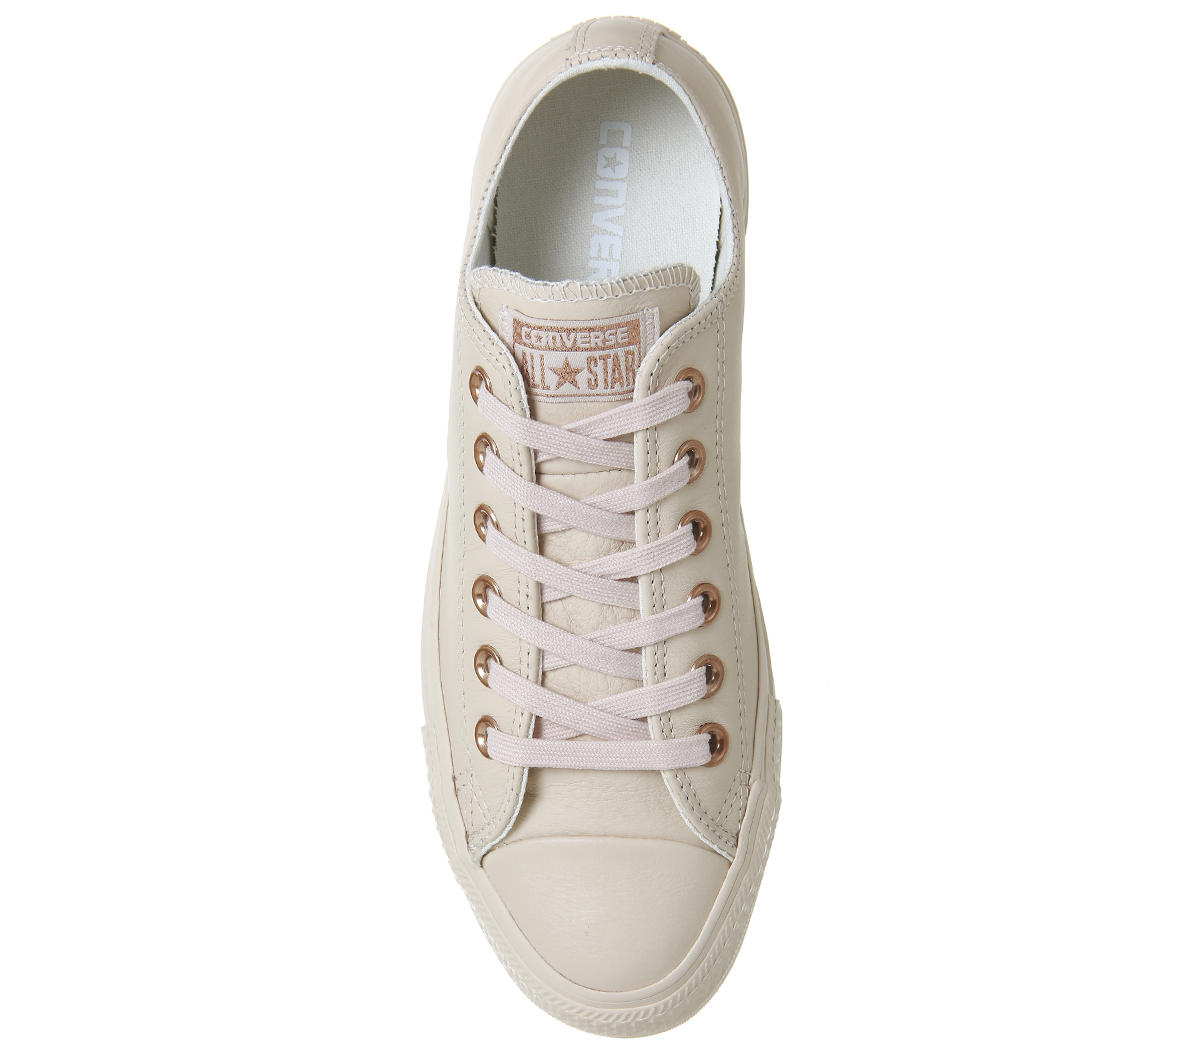 Damenschuhe Converse All Star Niedrig Leder PASTEL TAN ROSE TAN PASTEL ROSE GOLD Trainers Schuhes 295350